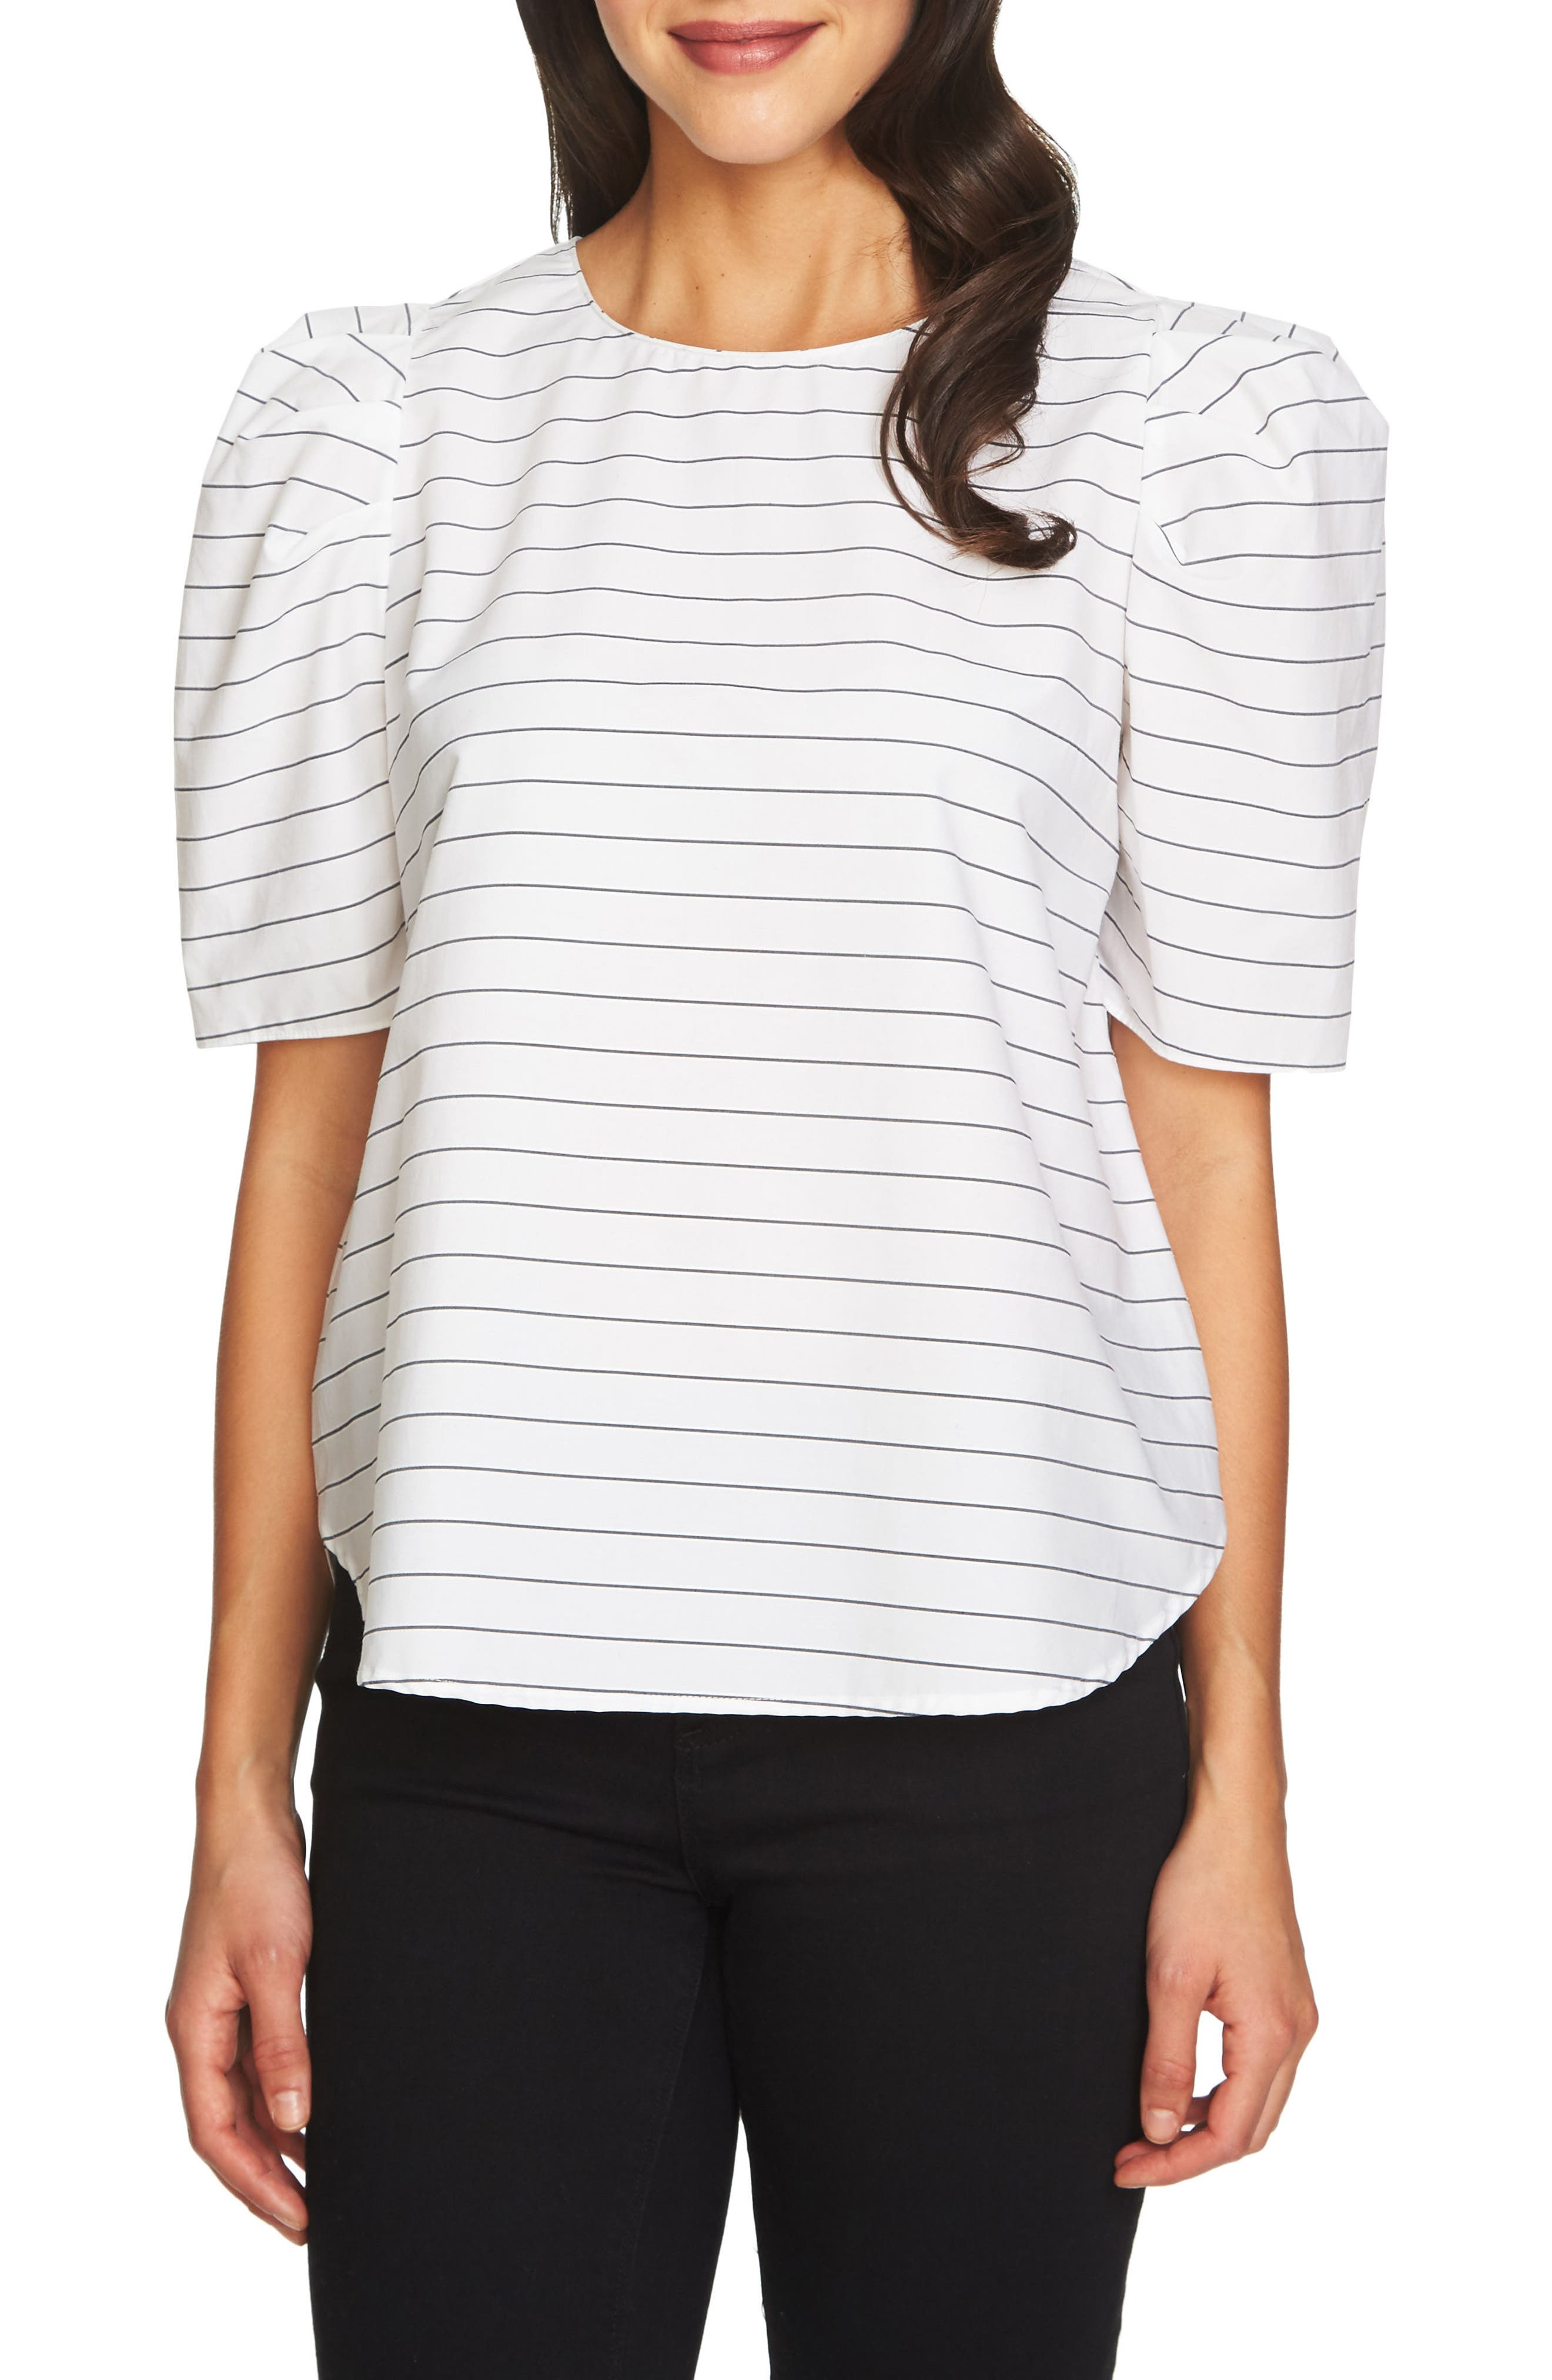 Main Image - 1.STATE Puff Sleeve Top